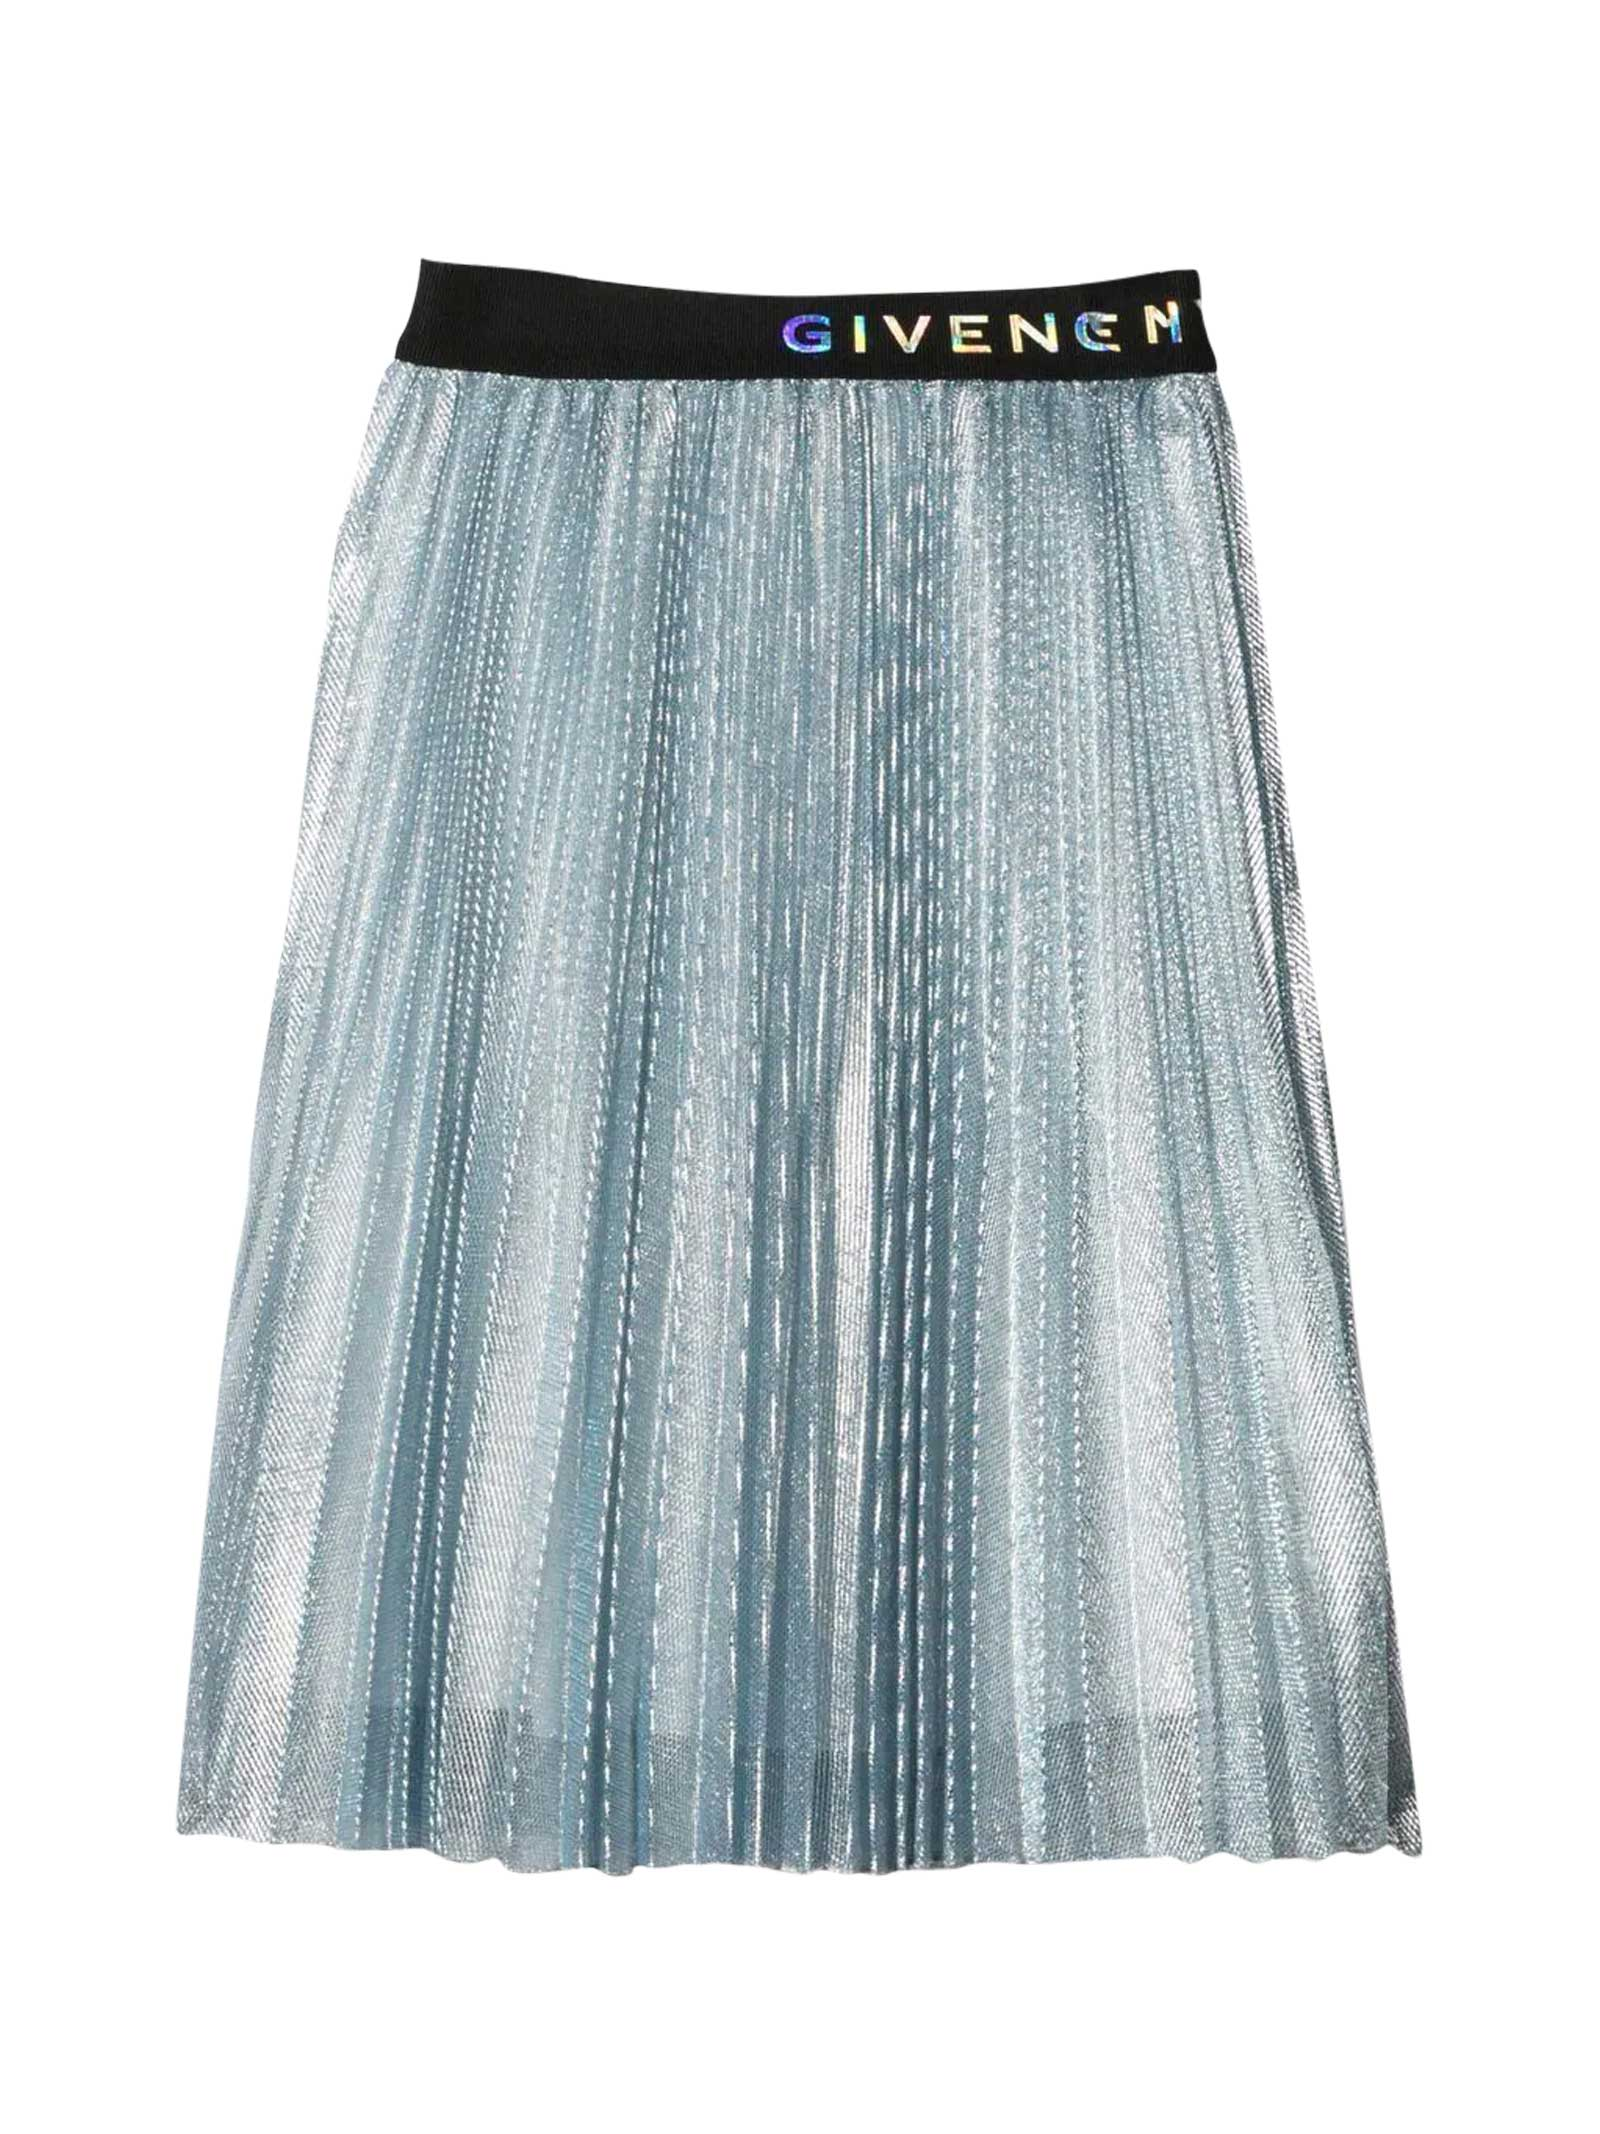 Givenchy Pleated Blue Skirt